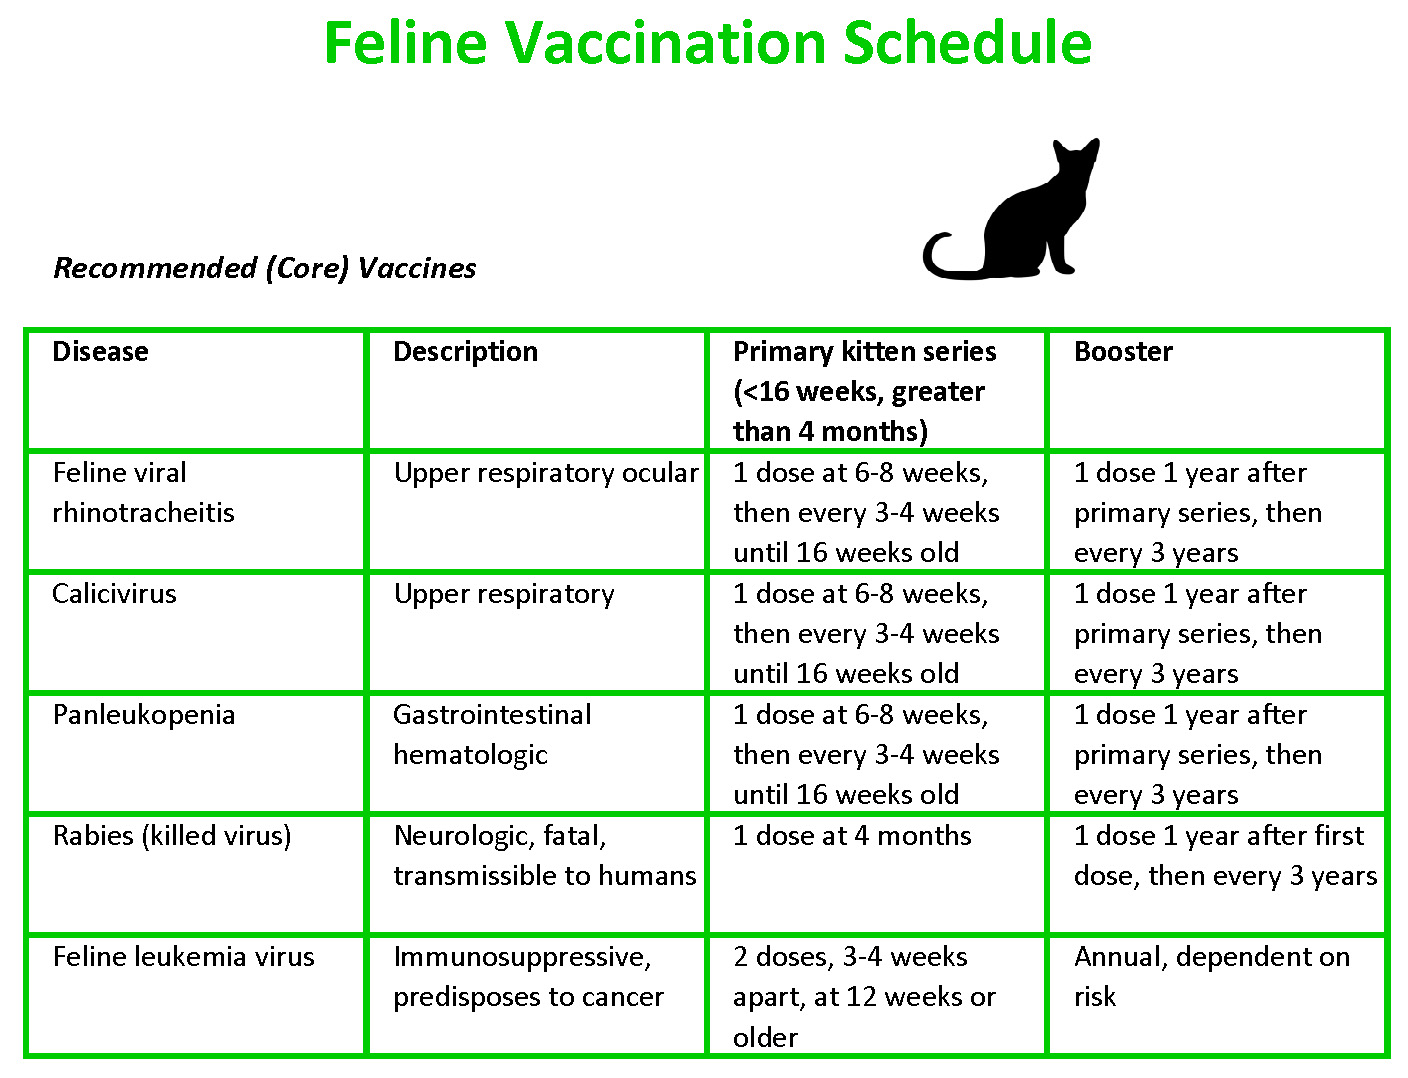 feline vaccination schedule - cool animal hospital - cool, ca